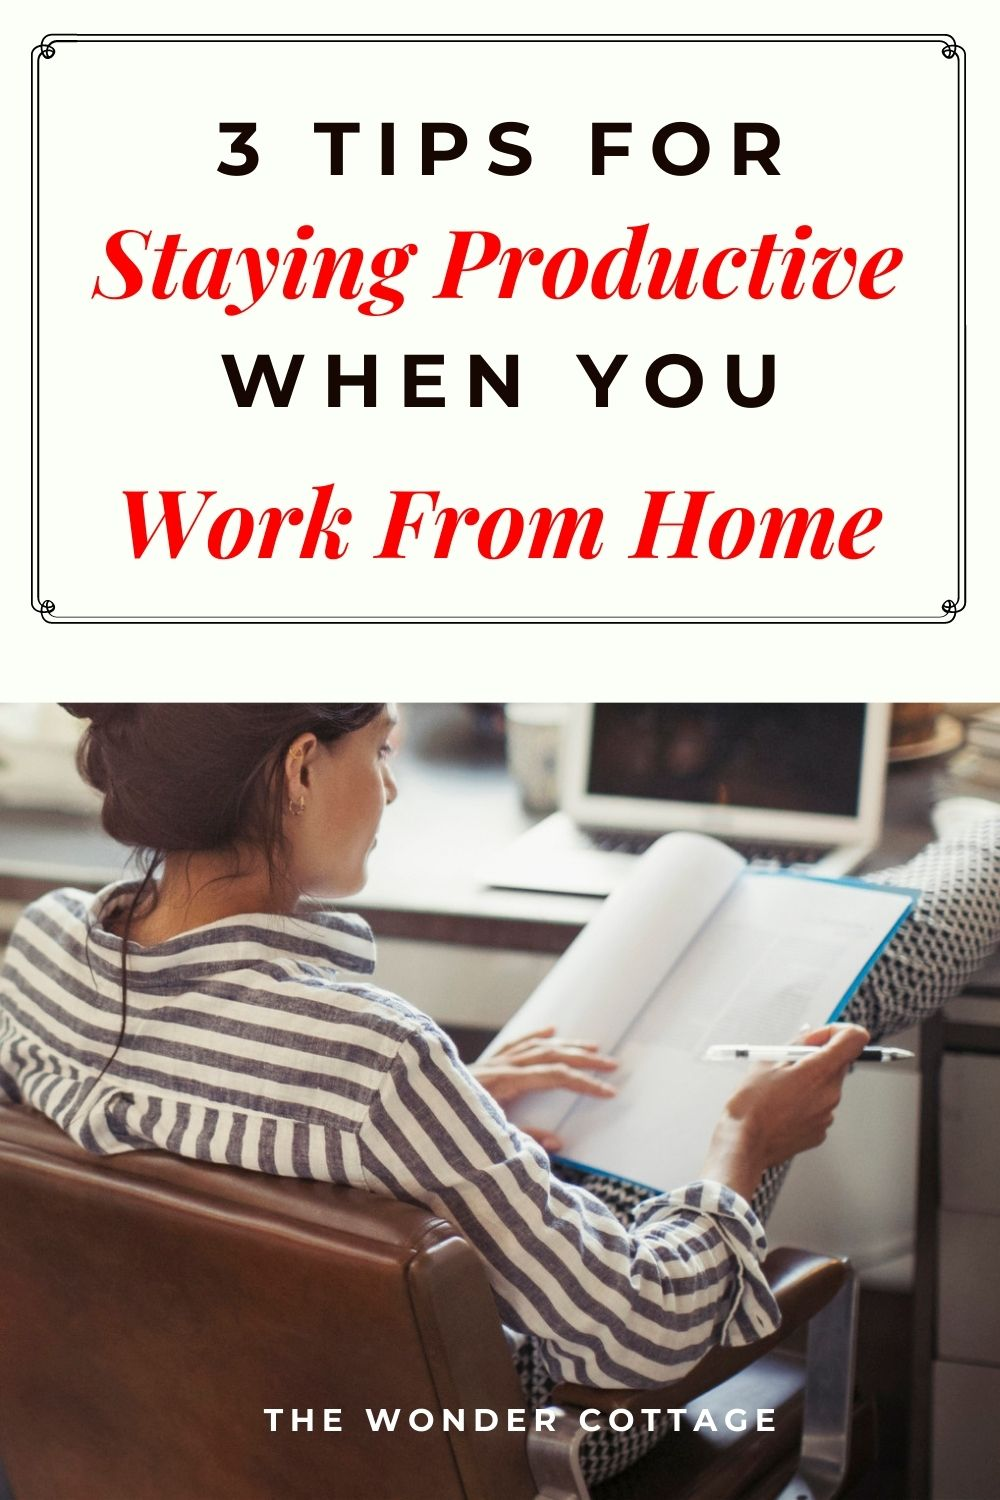 3 tips for staying productive when you work from home